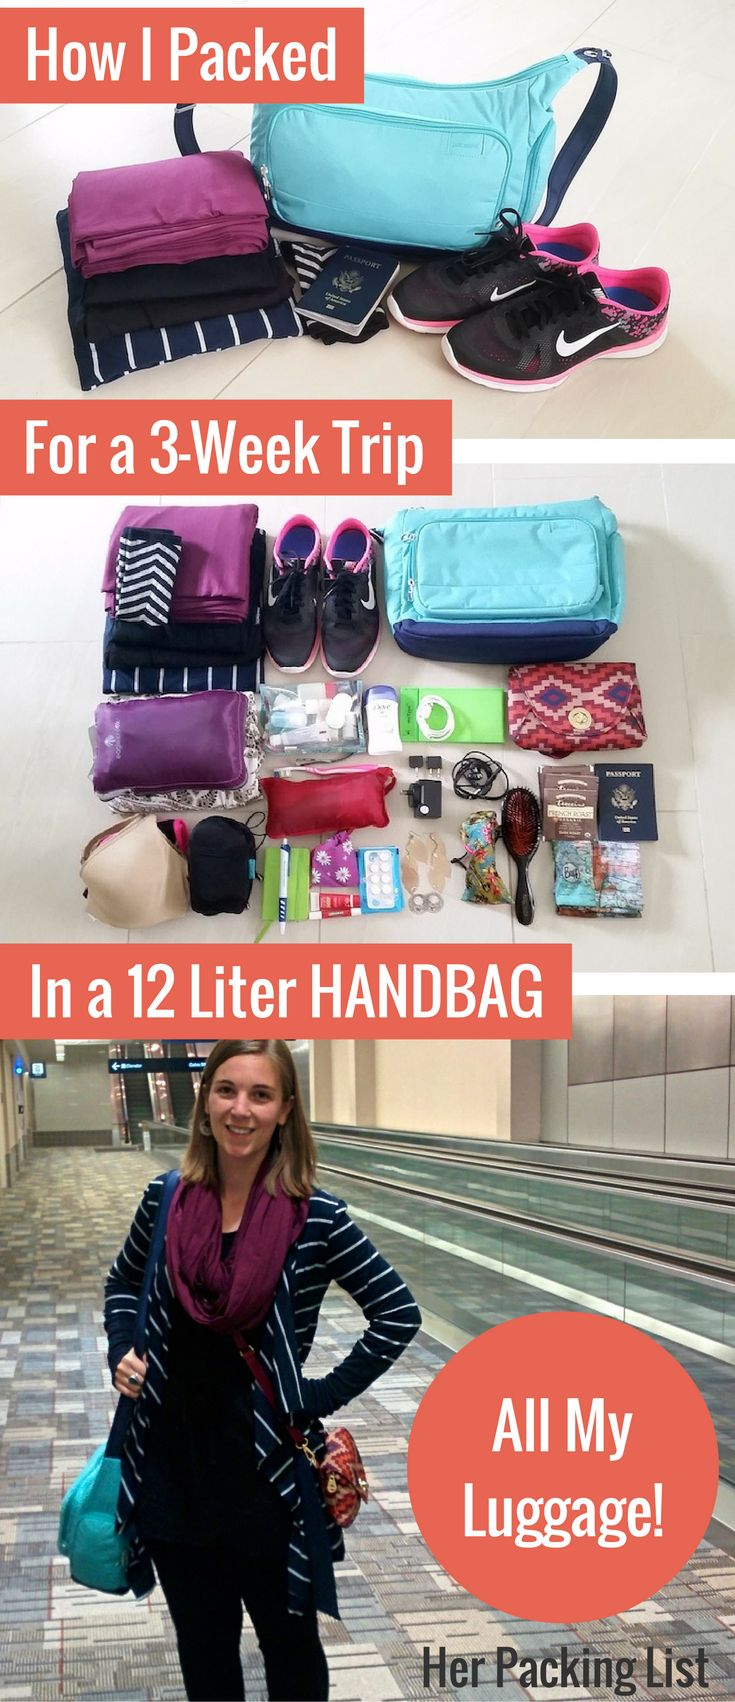 minimalist packing list that was sufficient for 3 full weeks of travel! Packing ultralight.